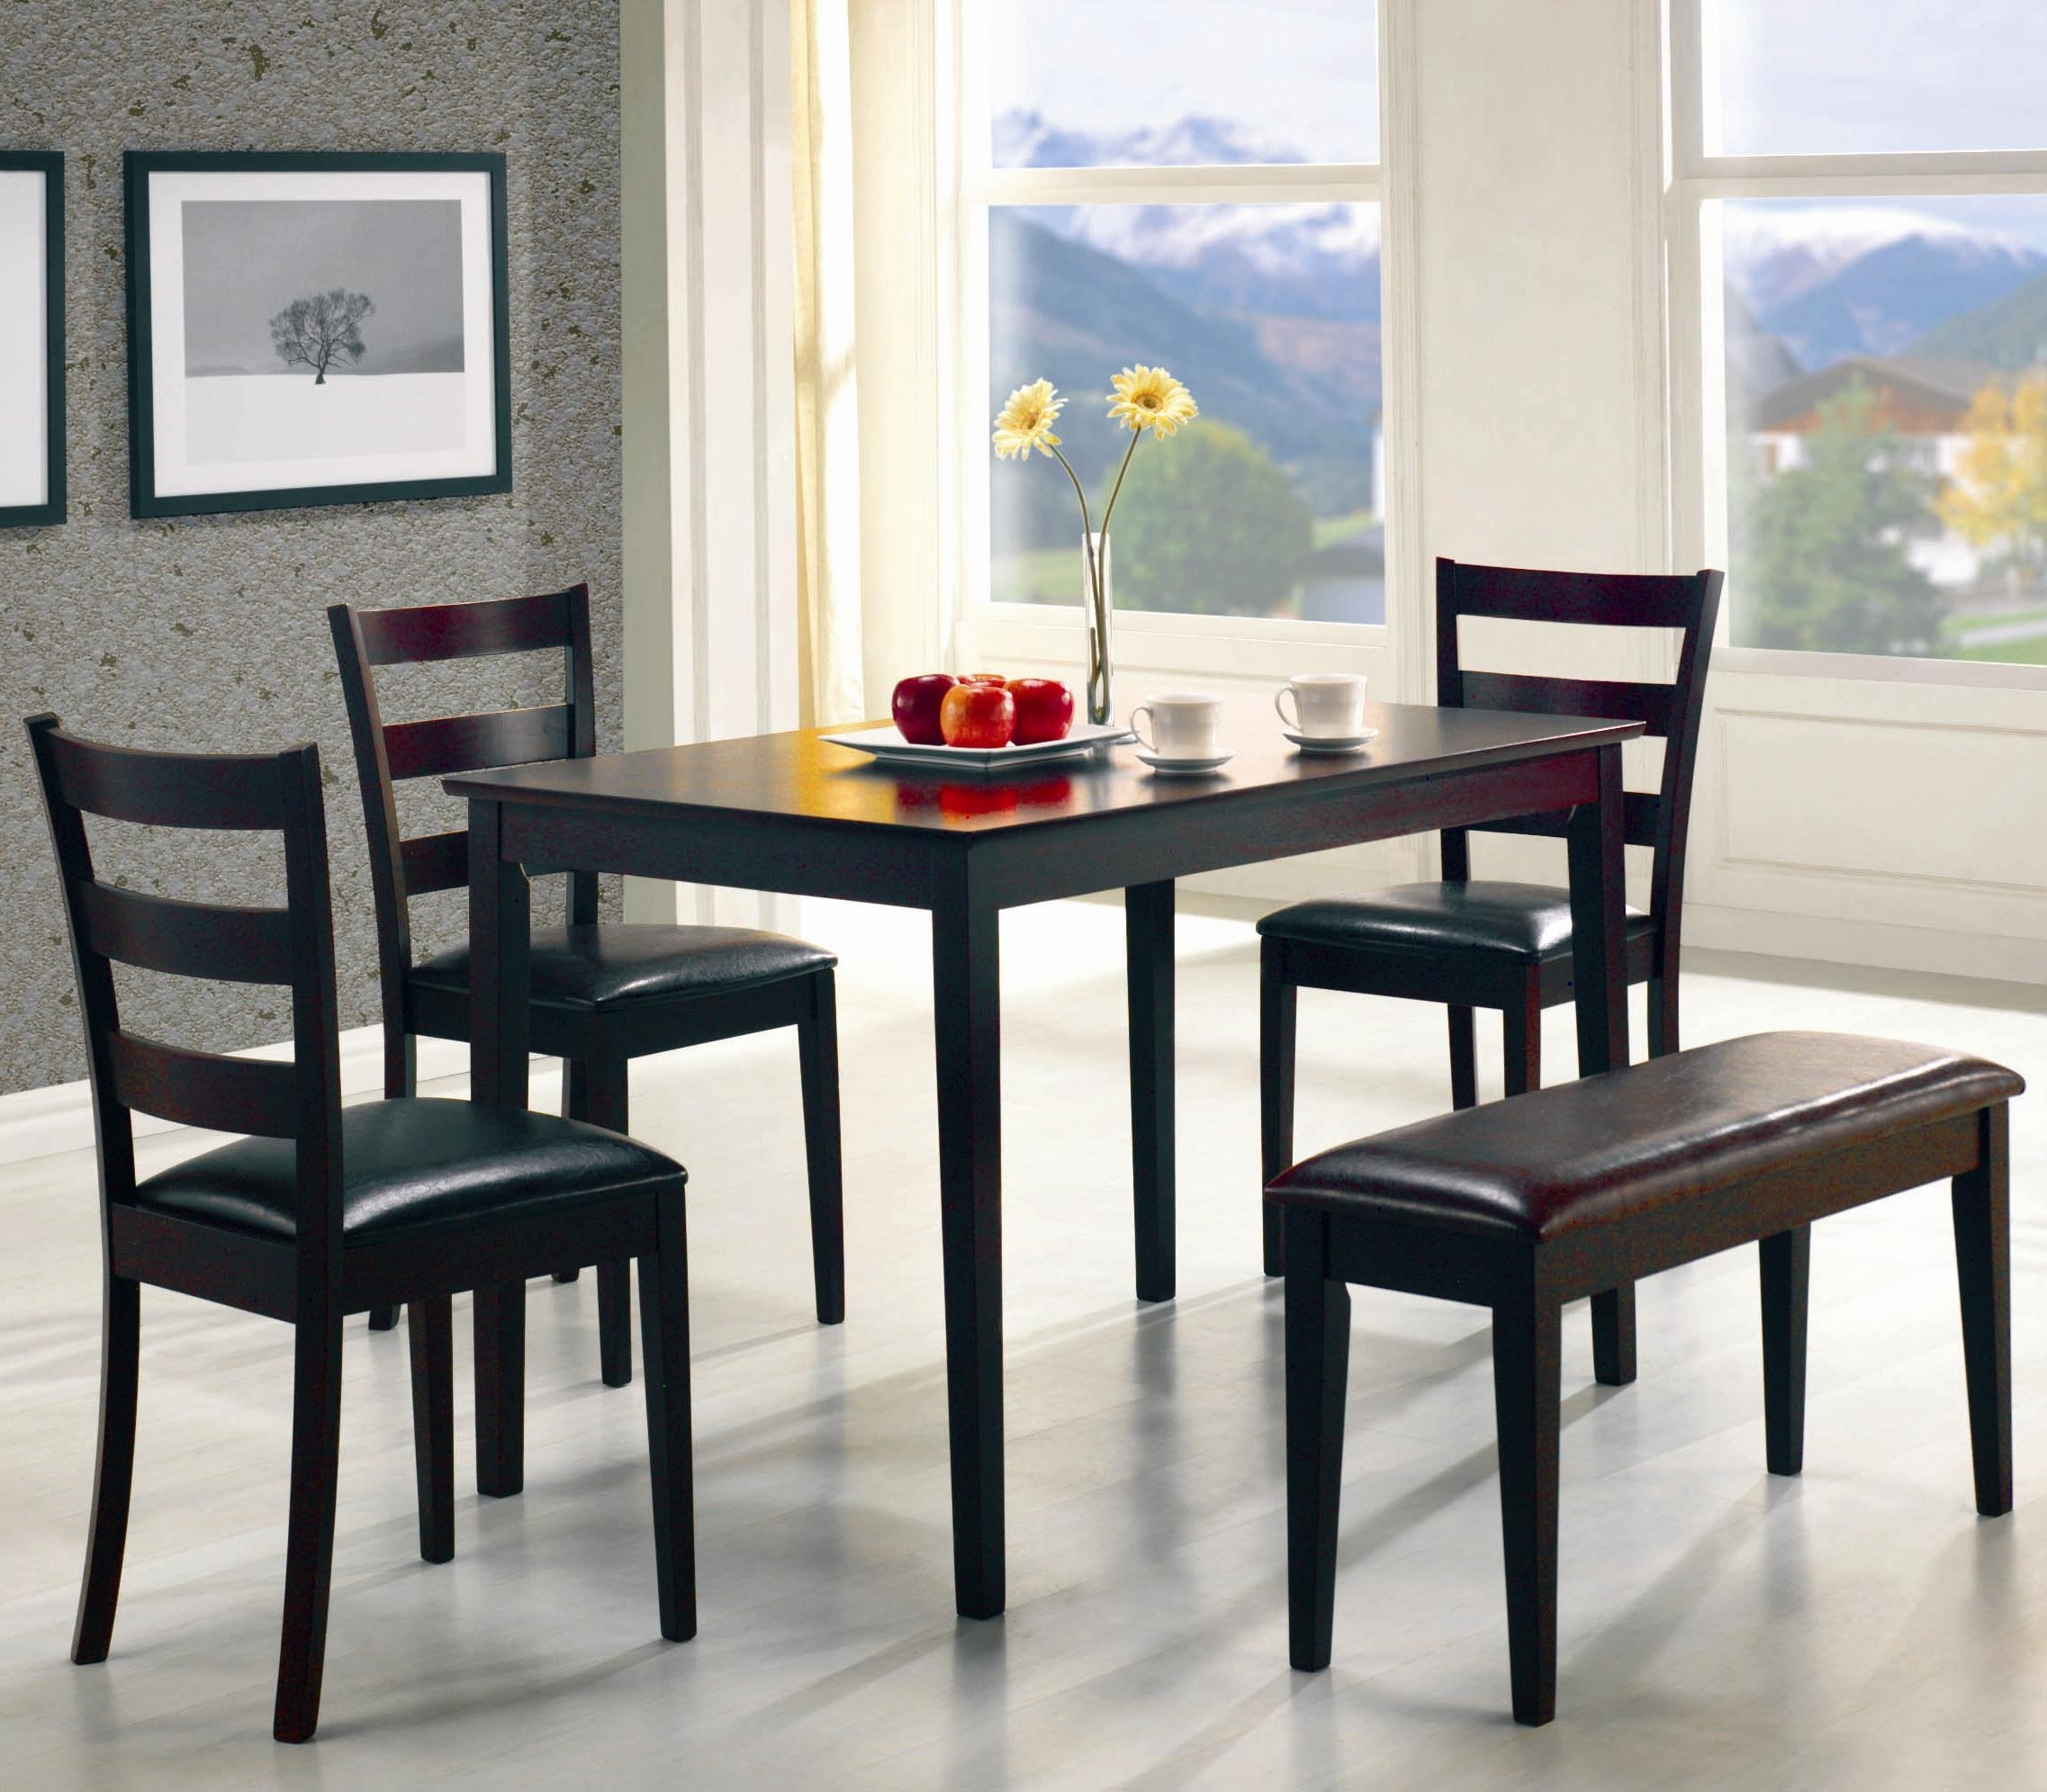 Santa Clara Furniture Store, San Jose Furniture Store, Sunnyvale Within Newest Market 6 Piece Dining Sets With Side Chairs (View 22 of 25)